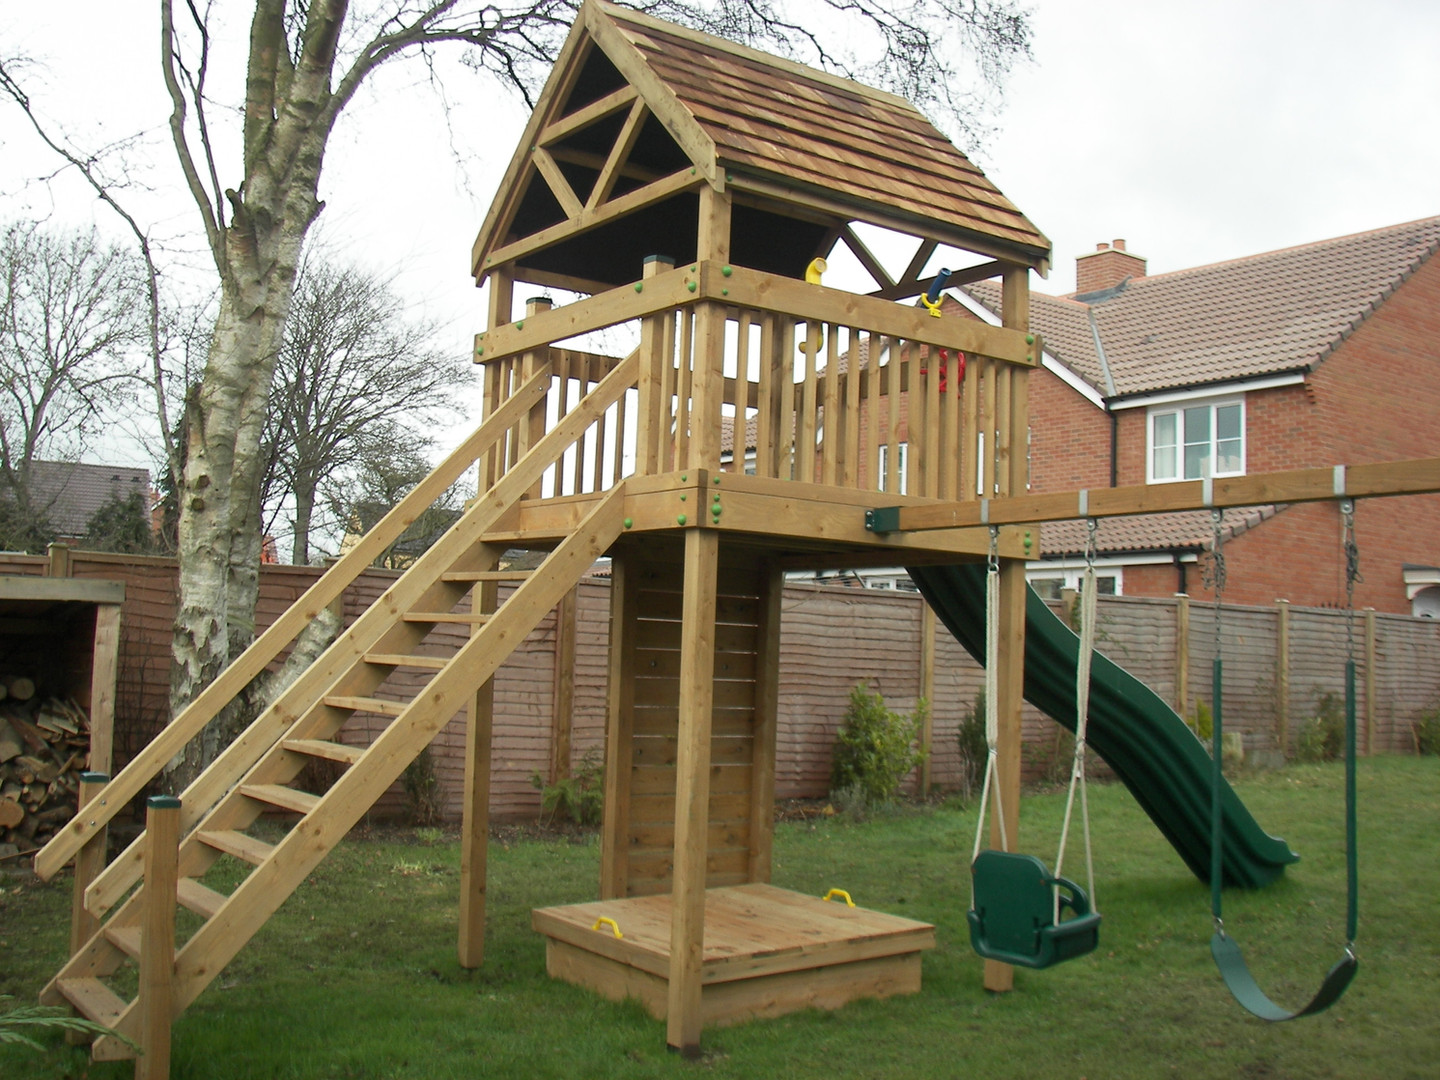 Residential Play Tower - Somerset